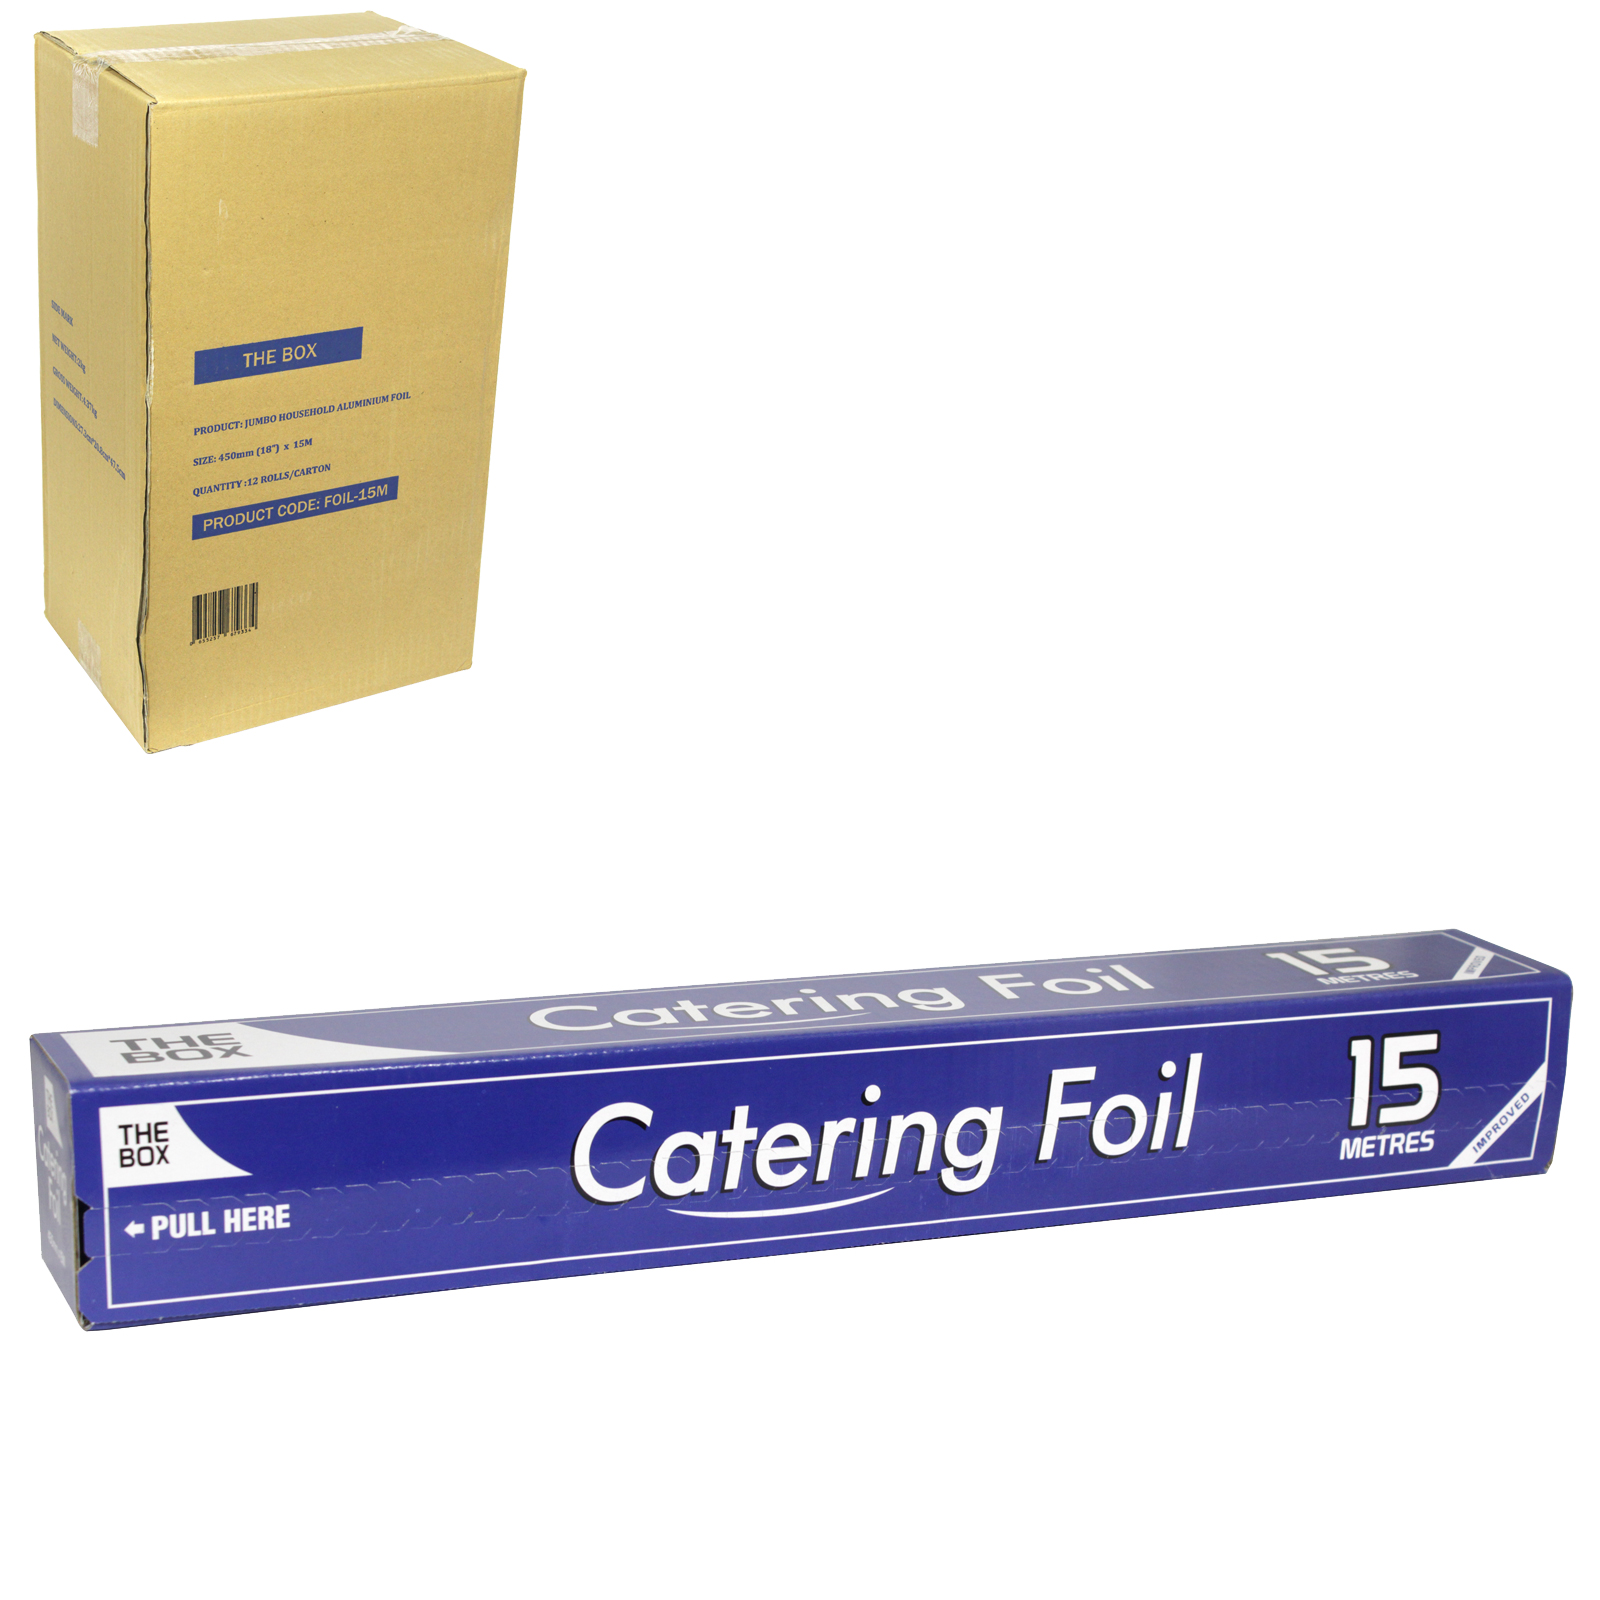 CHEFS CHOICE CATERING FOIL 450MMX15M X12